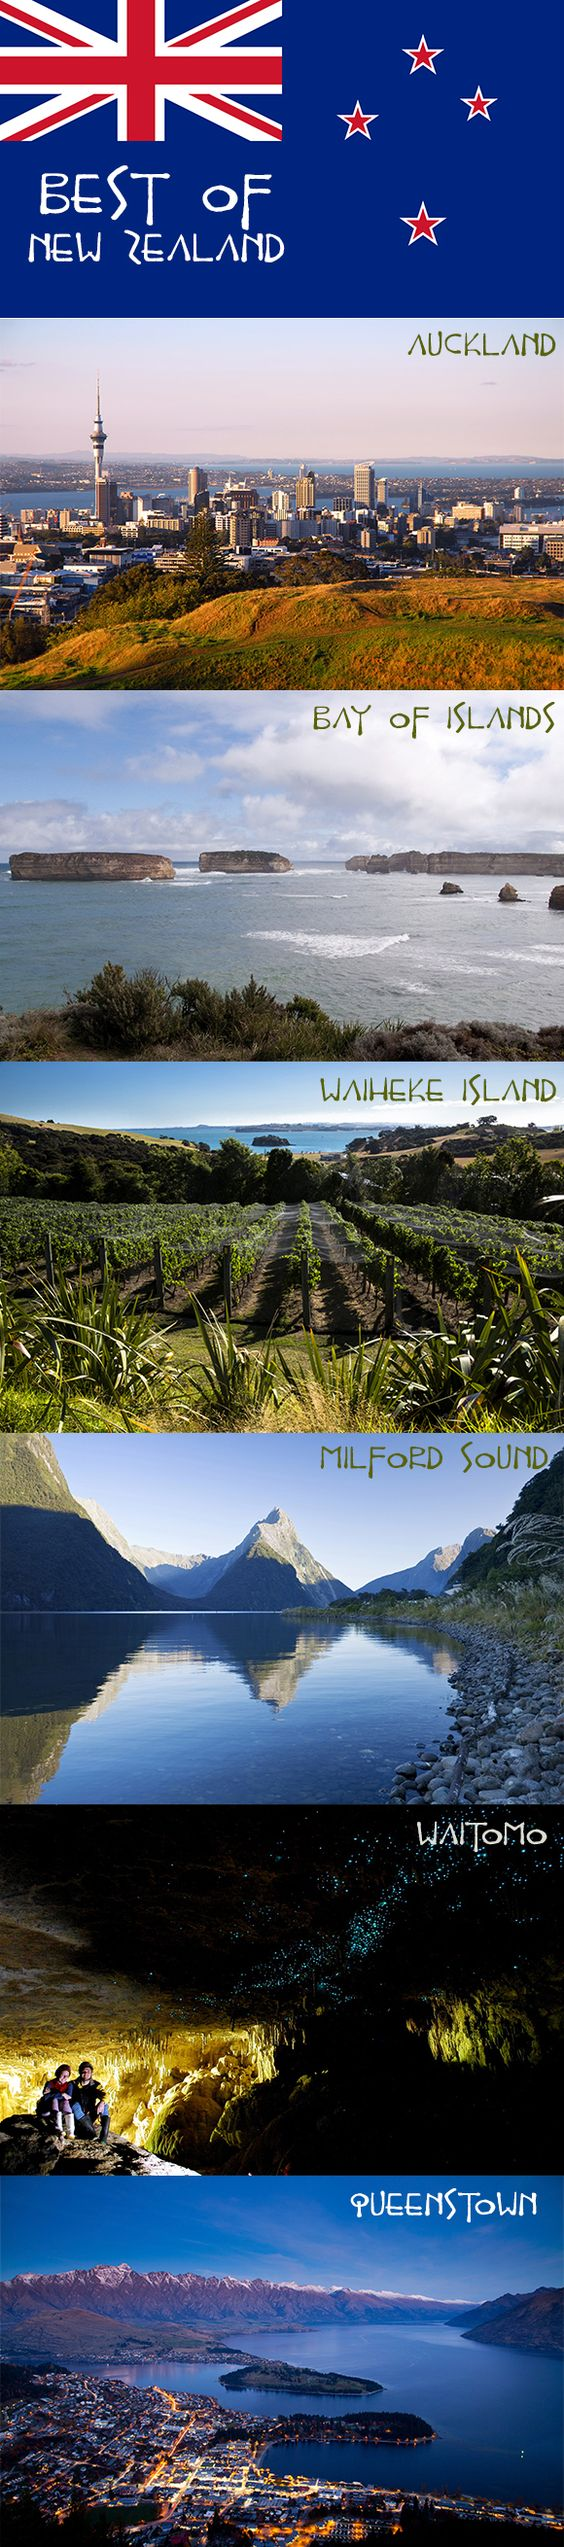 NZ - The Best Things to Do in New Zealand.